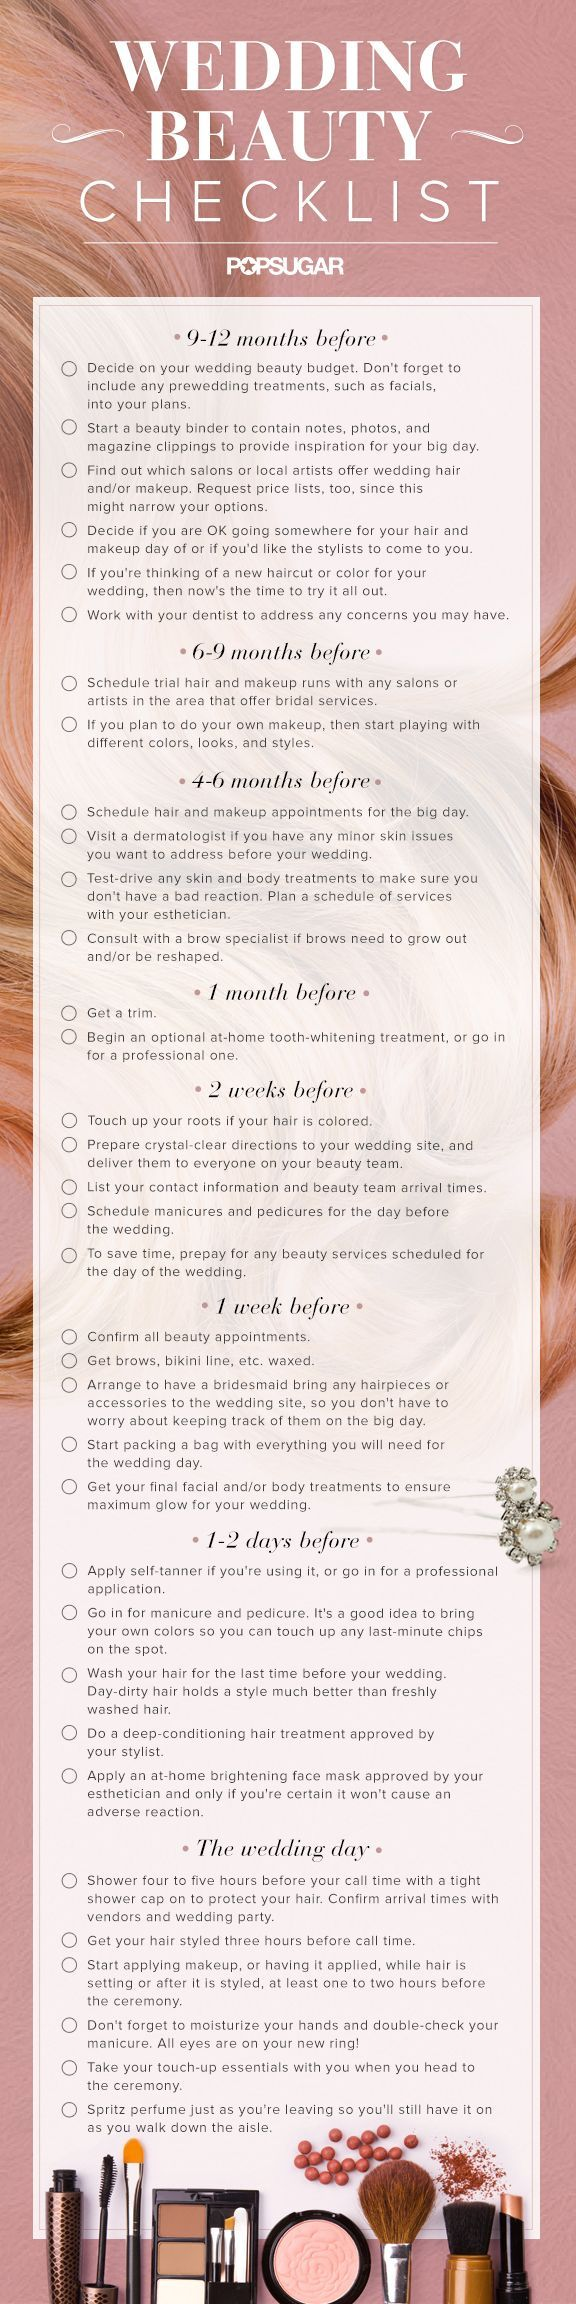 Awesome wedding beauty checklist for brides. good to know